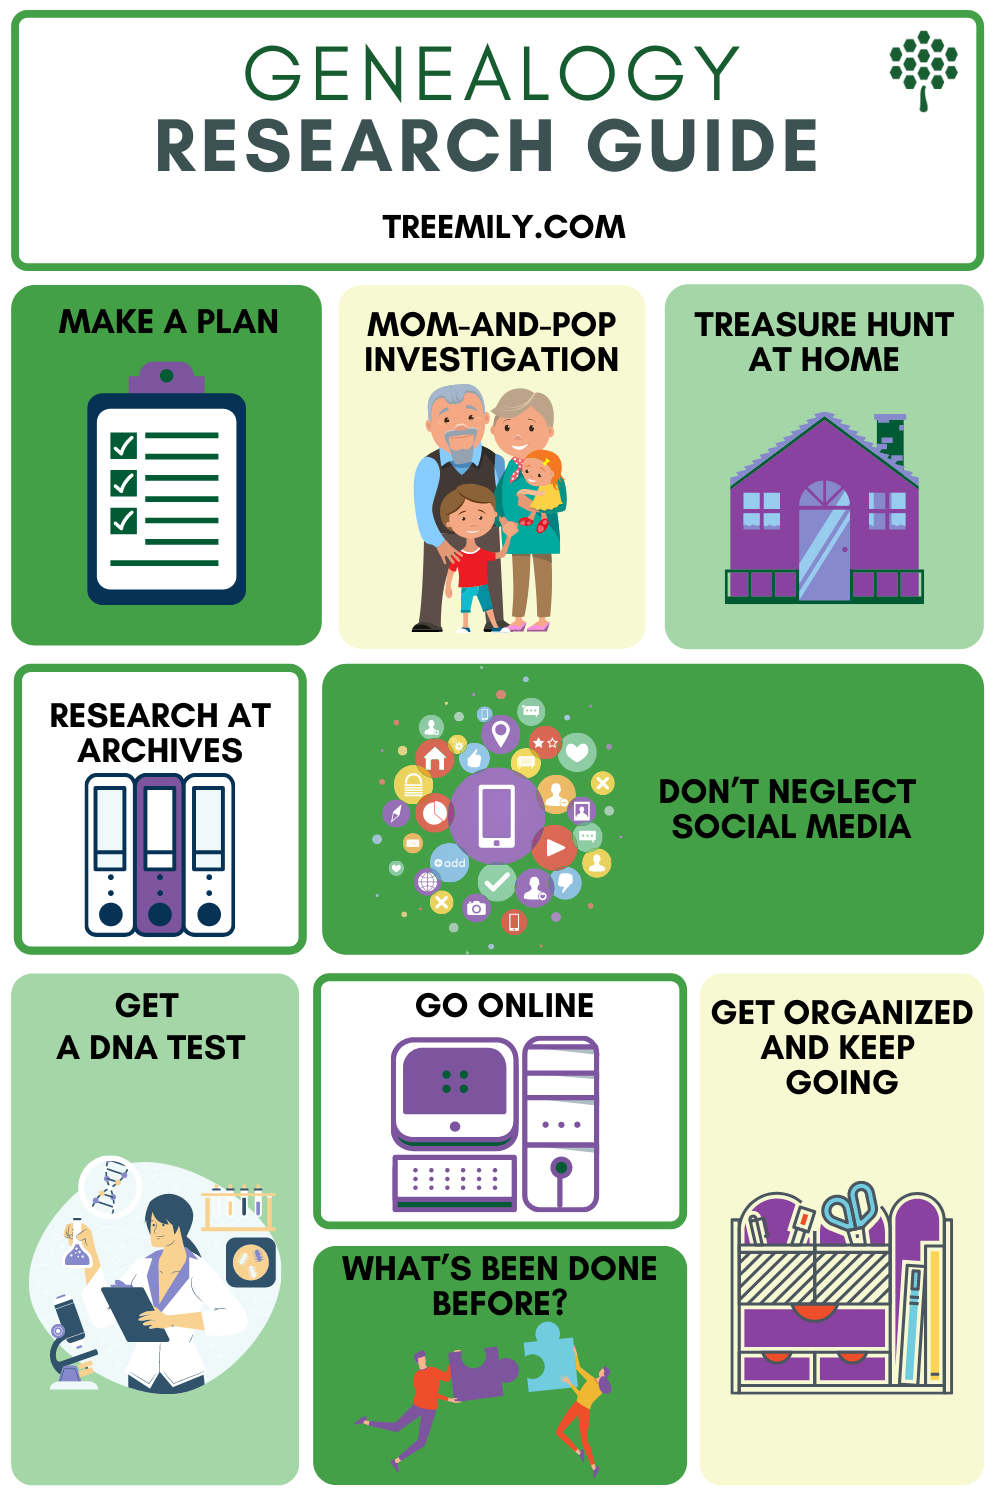 Infographic Genealogy Research Guide from Treemily